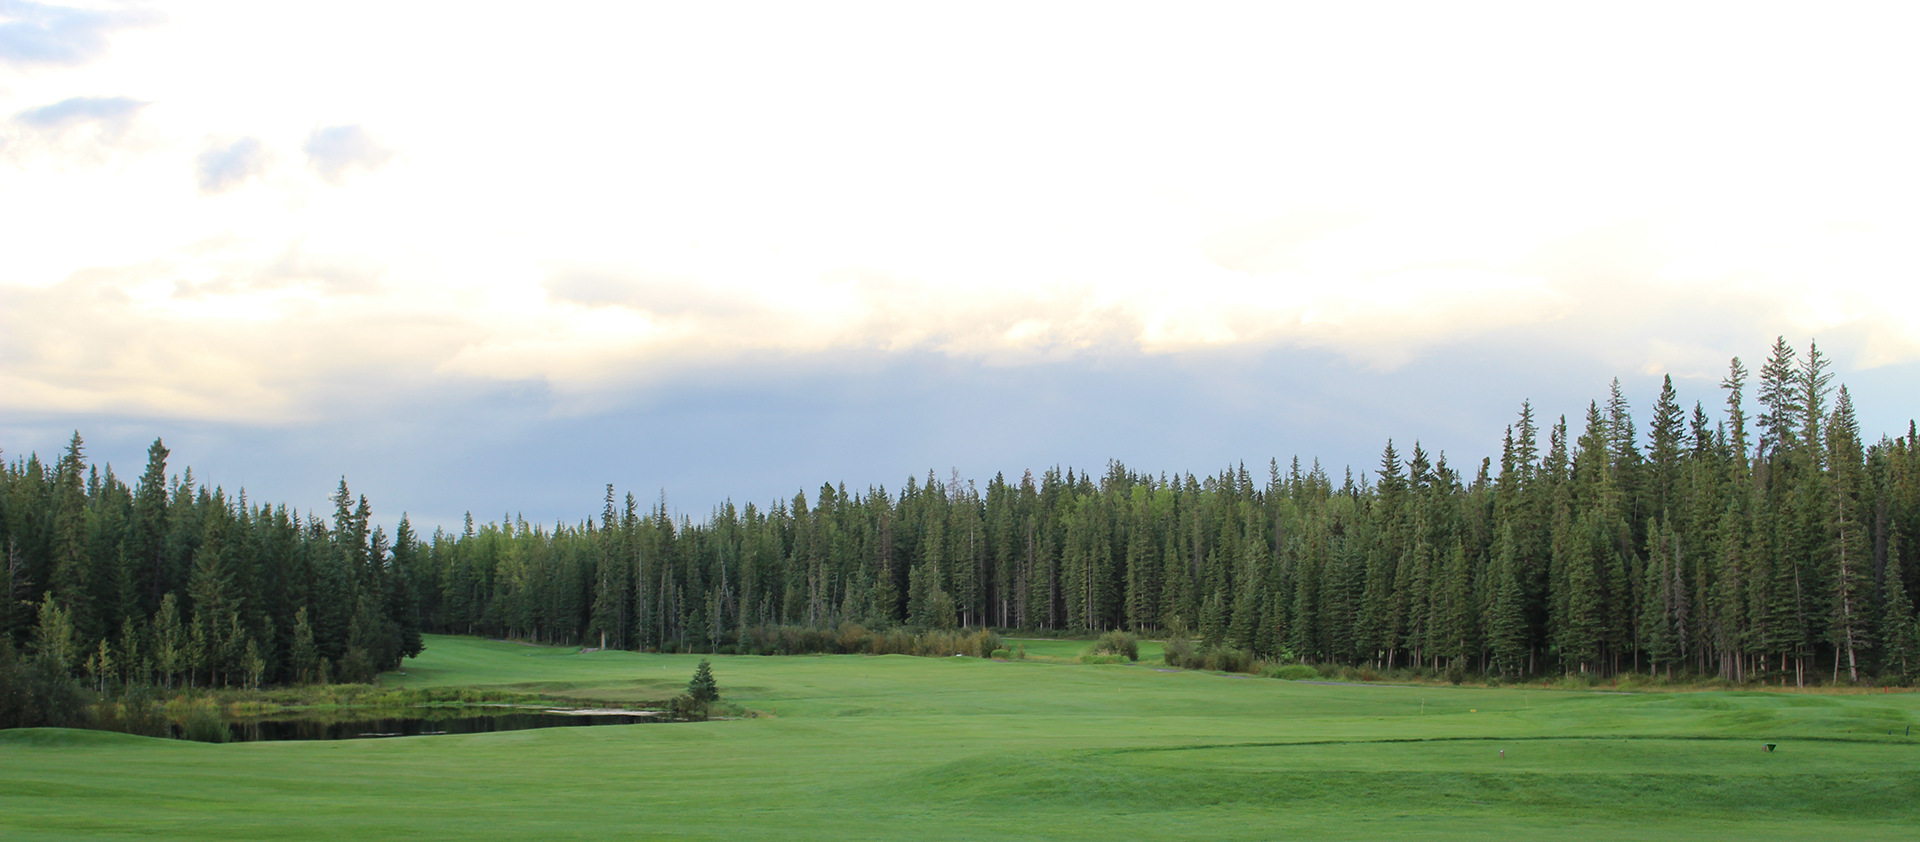 Overview of golf course named Hinton Golf Club